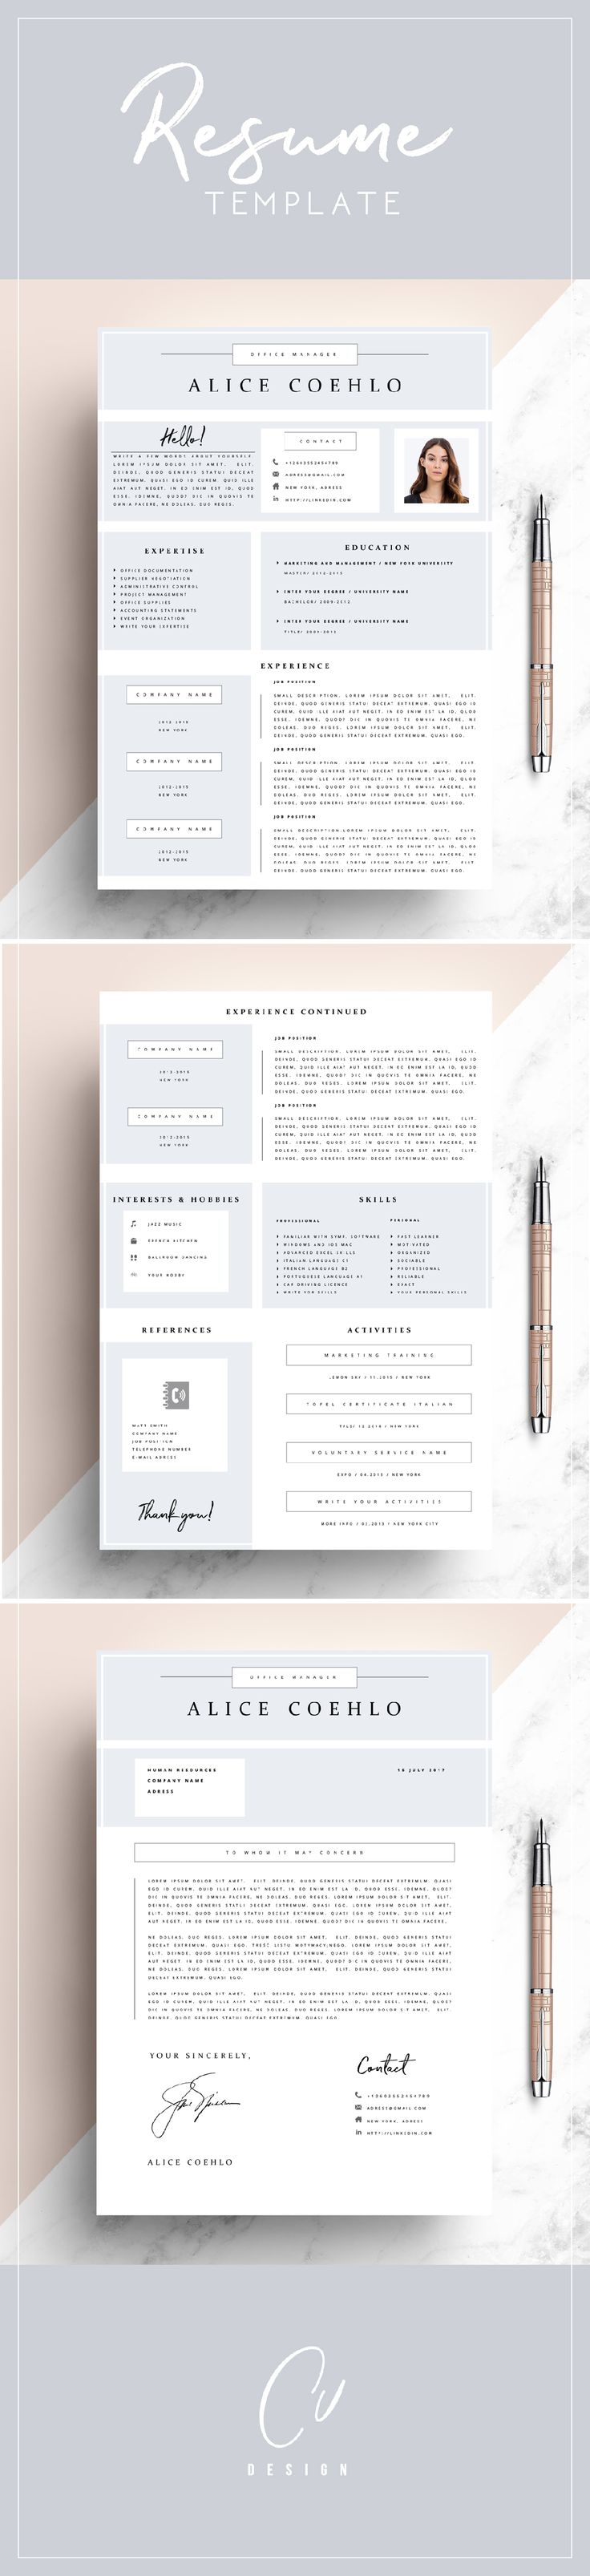 check out this amazing ms word editable resume template - Microsoft Resume Template